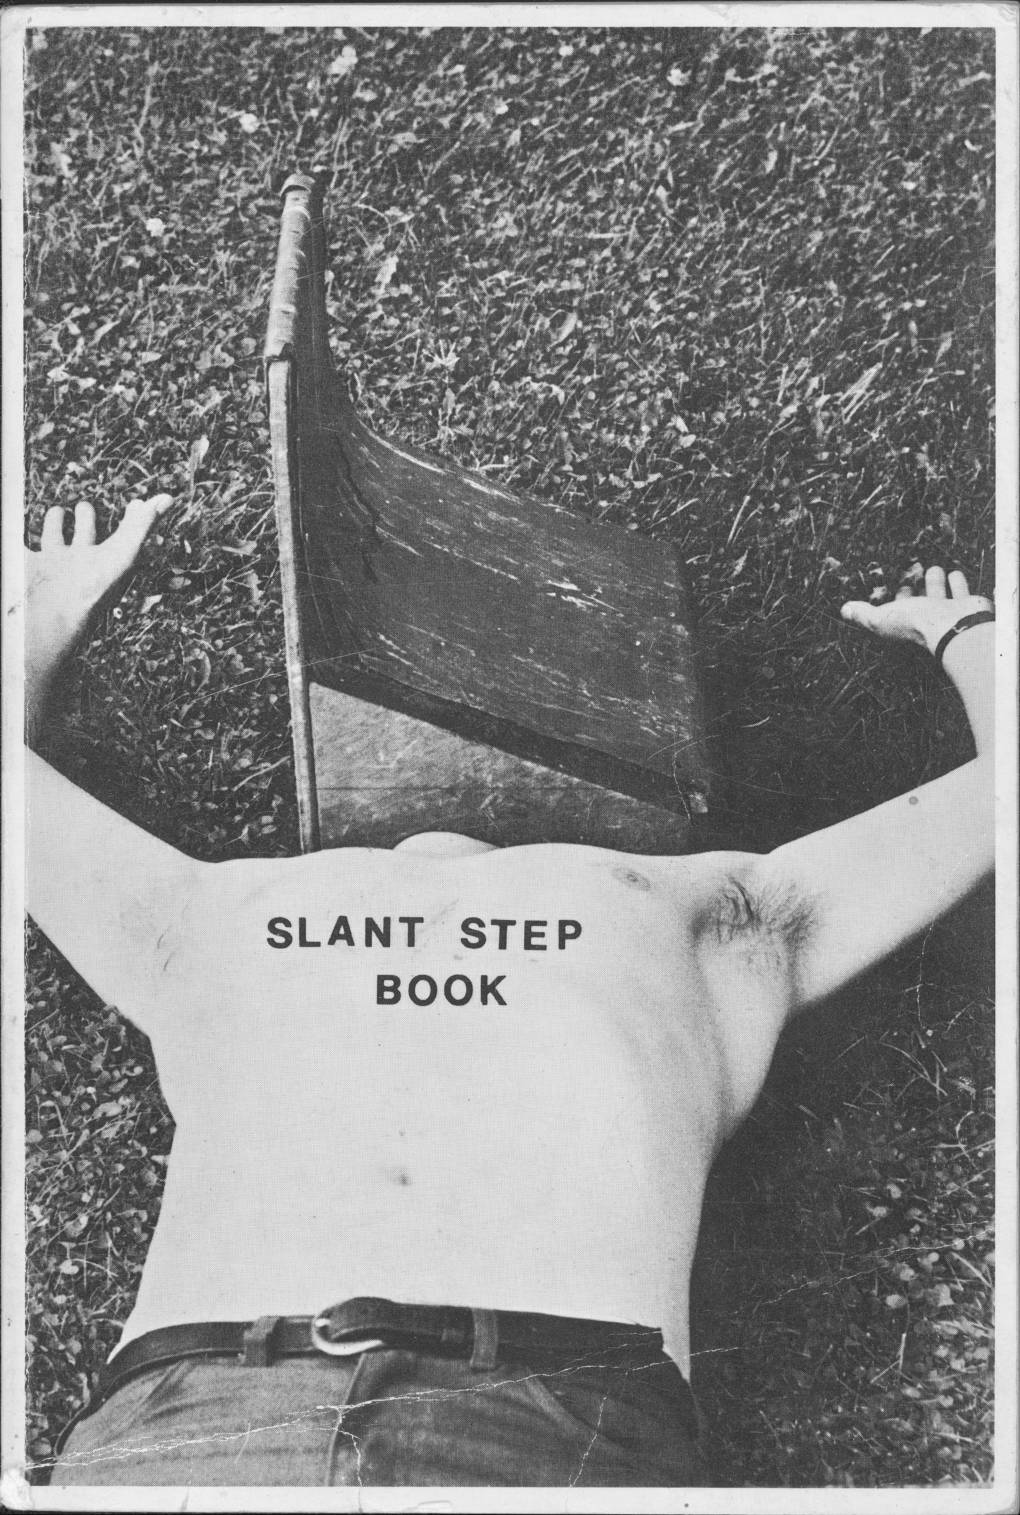 Phil Weidman, with contributions by William Allan, Richard C., Jack Edwards, Jack Fulton, Ray Johnson, Steve Jongeward, Stephen Kaltenbach, Robert Leach, Bruce Nauman, Jack Ogden, Frank Owen, Ron Peetz, Lawrence Dean Phillips, Peter Saul, Dorothy Wiley, William T. Wiley, William Witherup, 'Slant Step Book,' 1969.